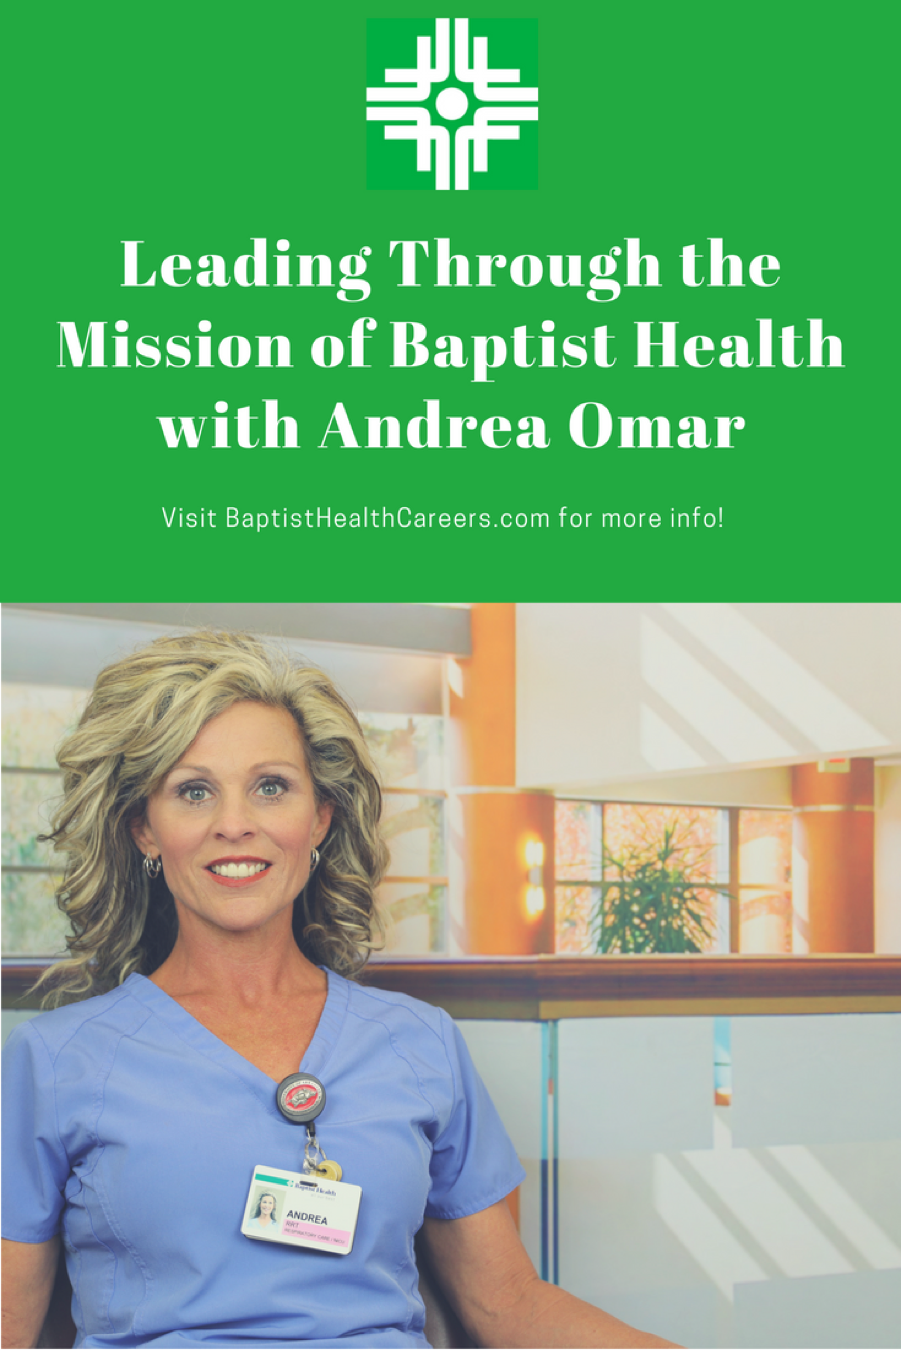 Leading Through the Mission of Baptist Health with Andrea